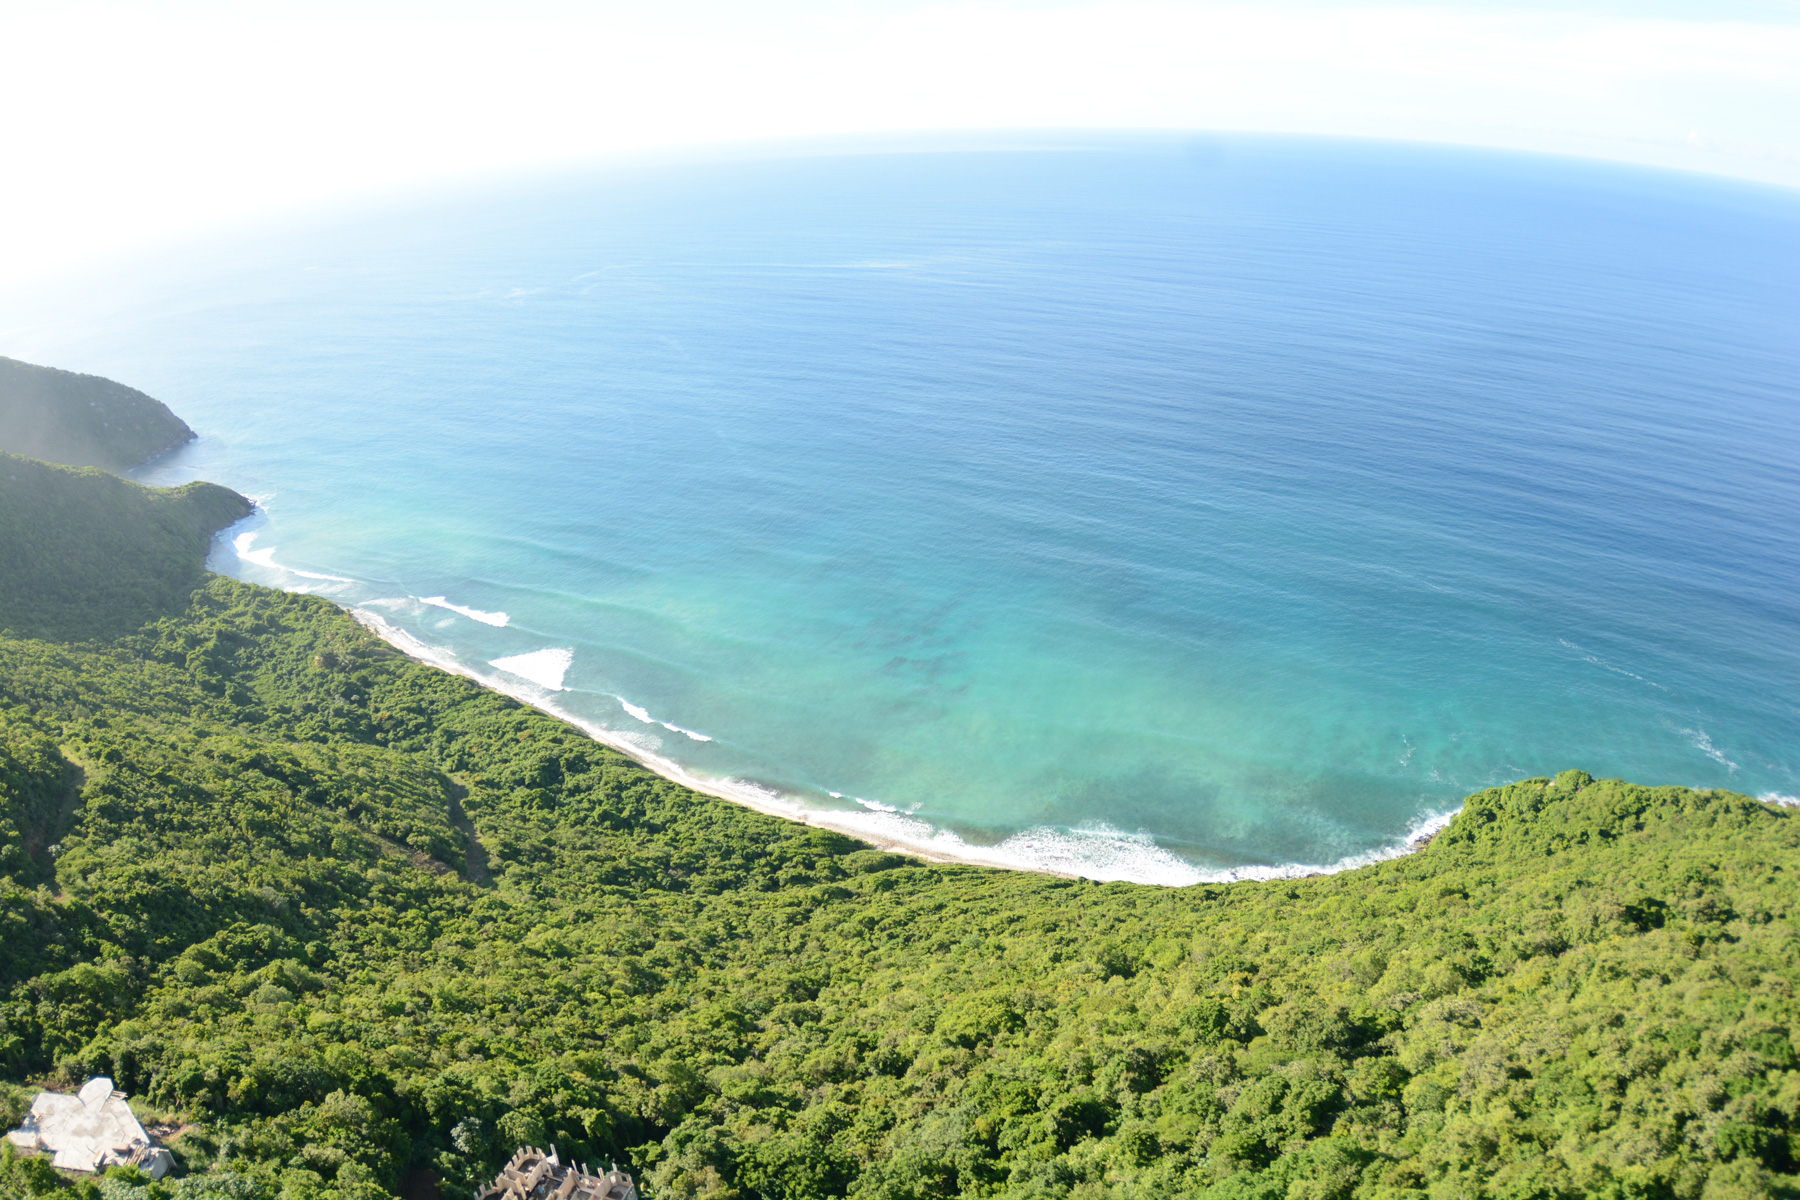 Land for Sale at Larmer Bay Land 167 Larmer Bay, Tortola British Virgin Islands